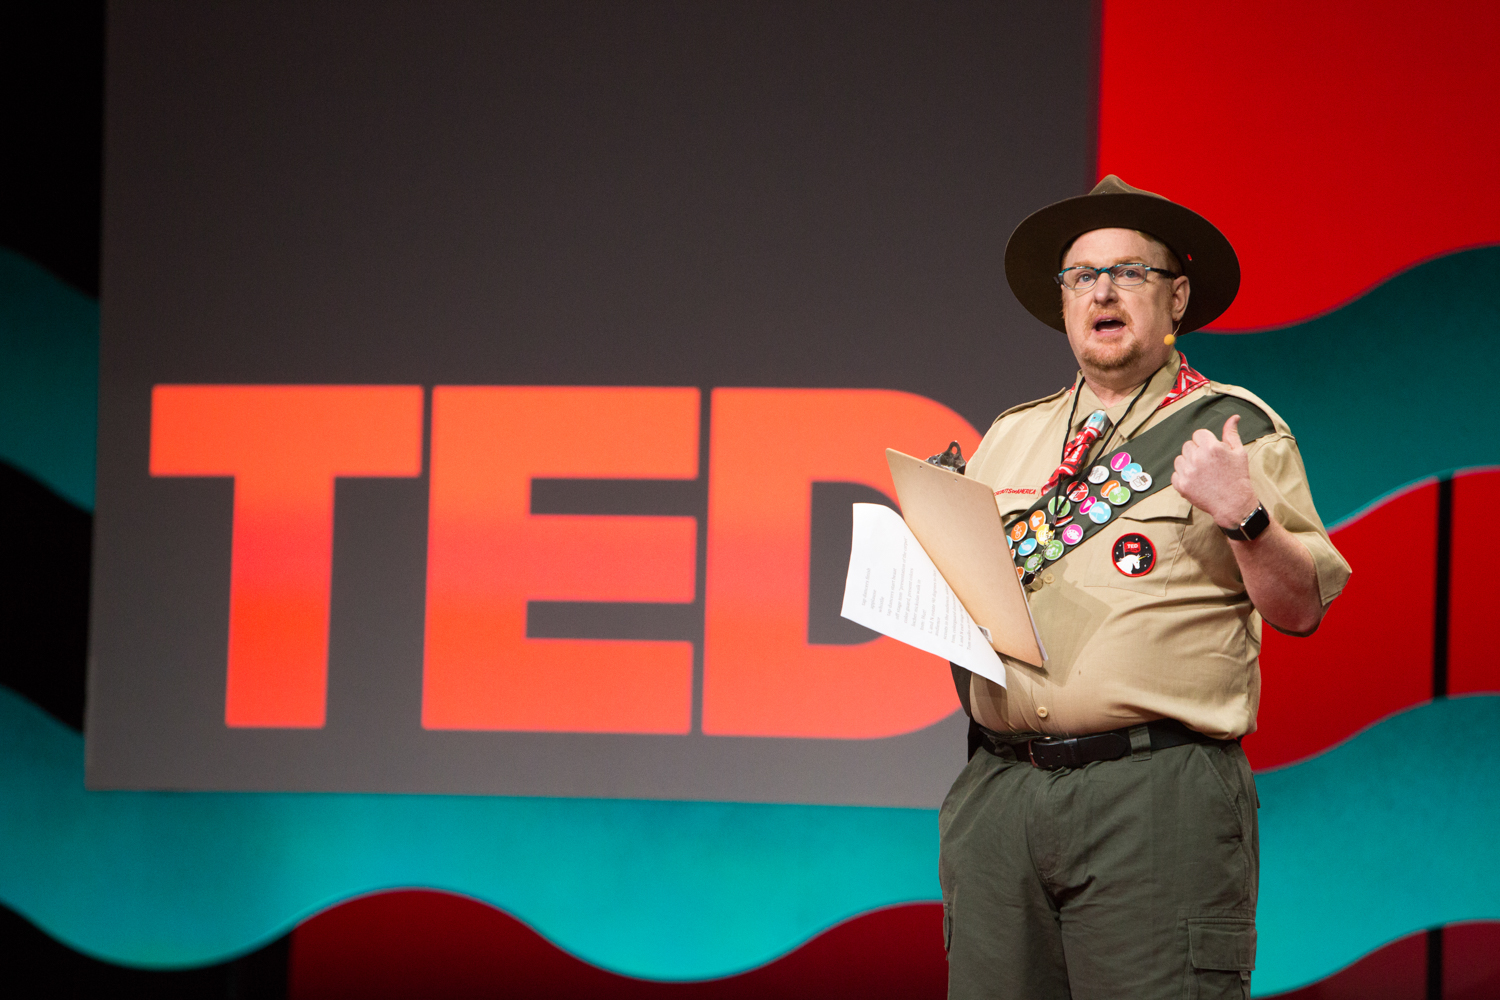 Be prepared: TED Fellows director Tom Rielly opens the first session of the TED Fellows Retreat talks in Scoutmaster regalia. Photo: Ryan Lash